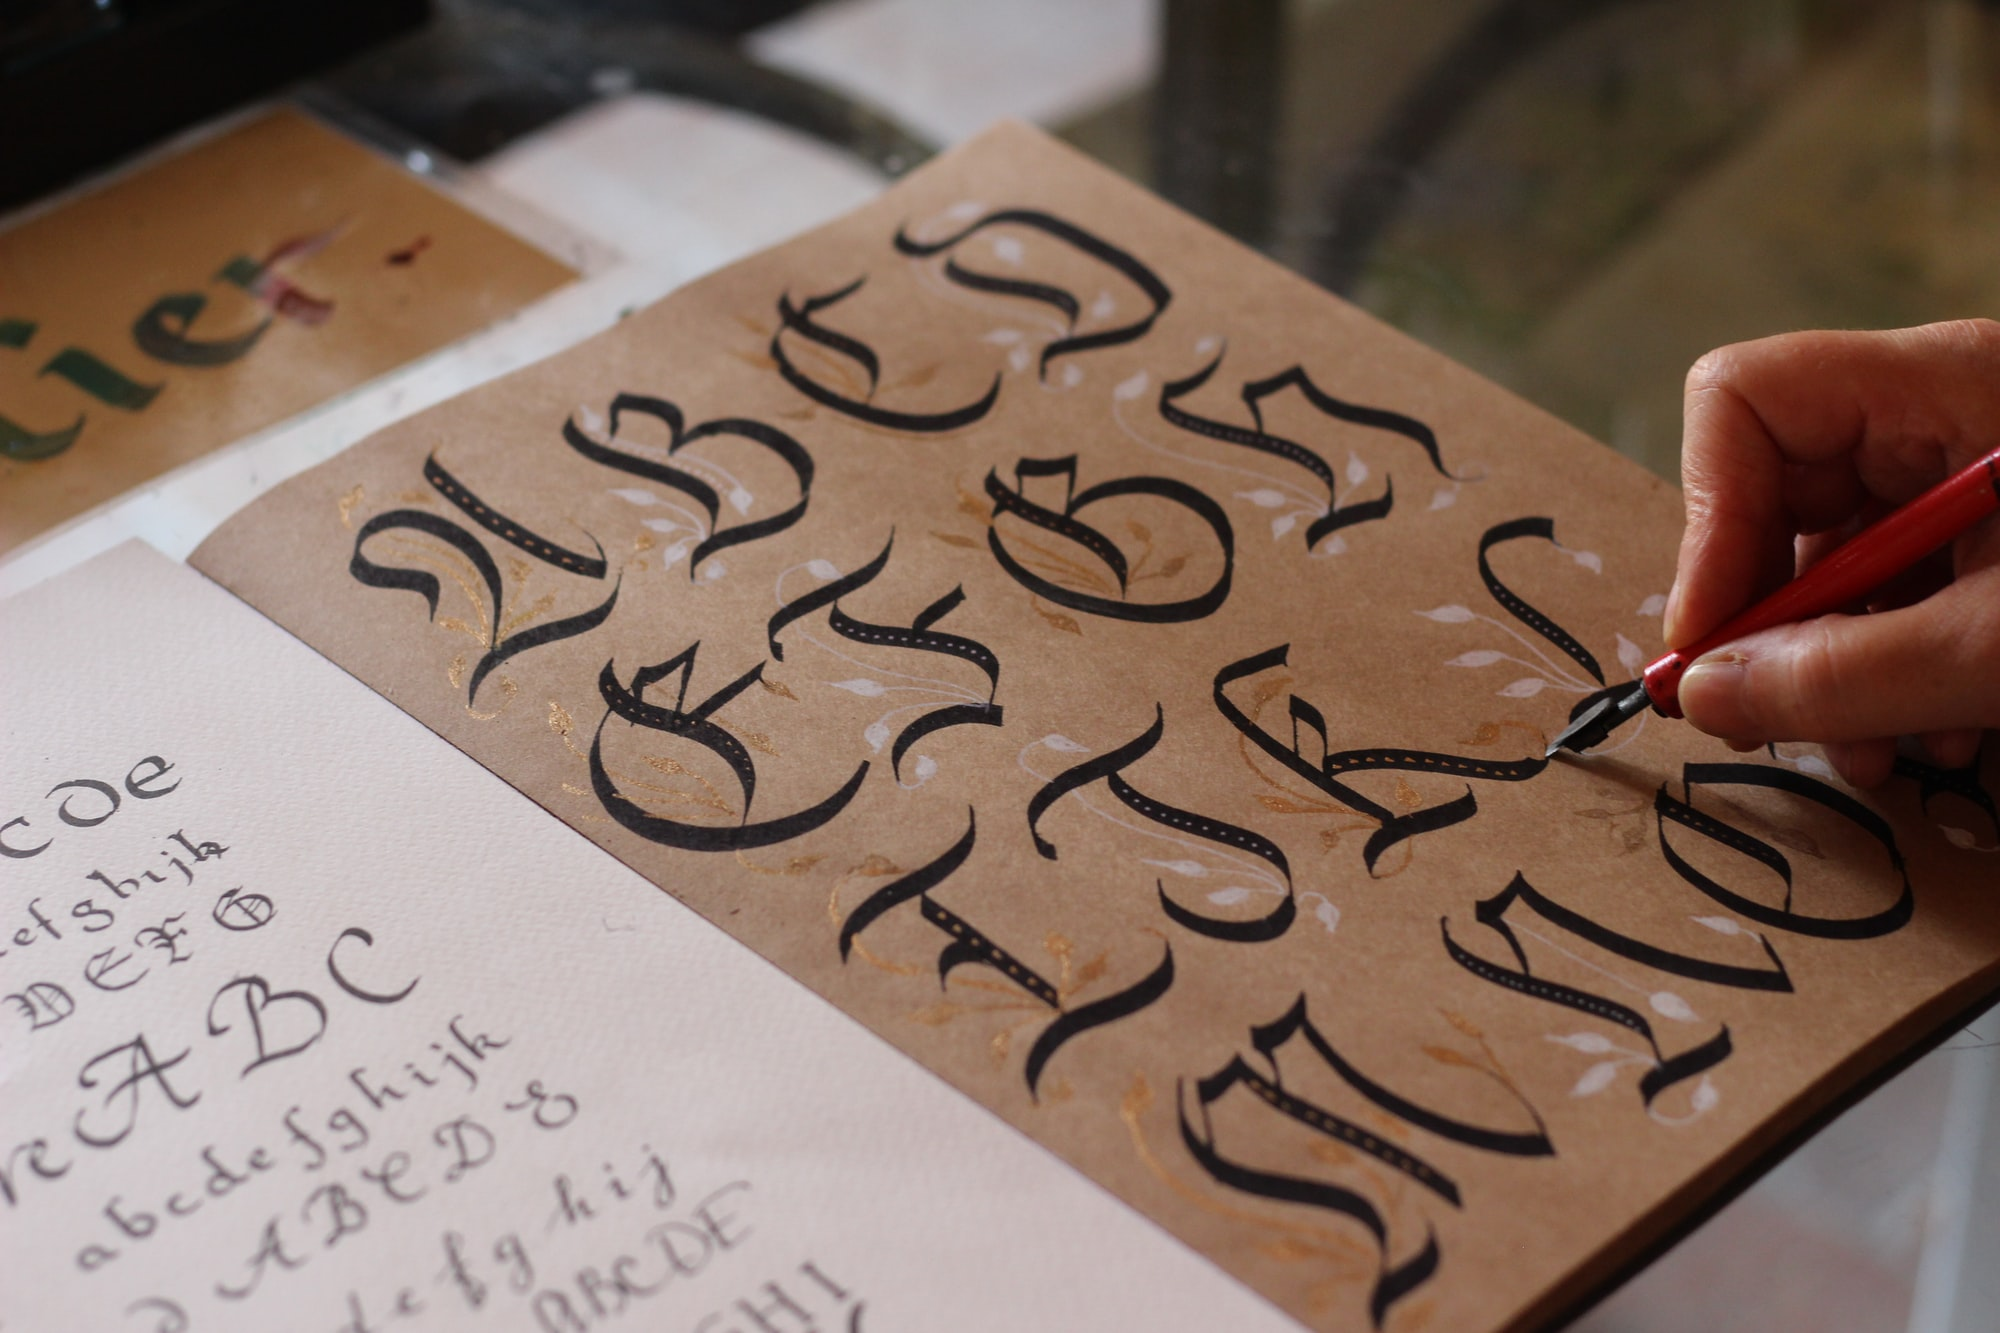 How To Learn Calligraphy For Free - Start Today!